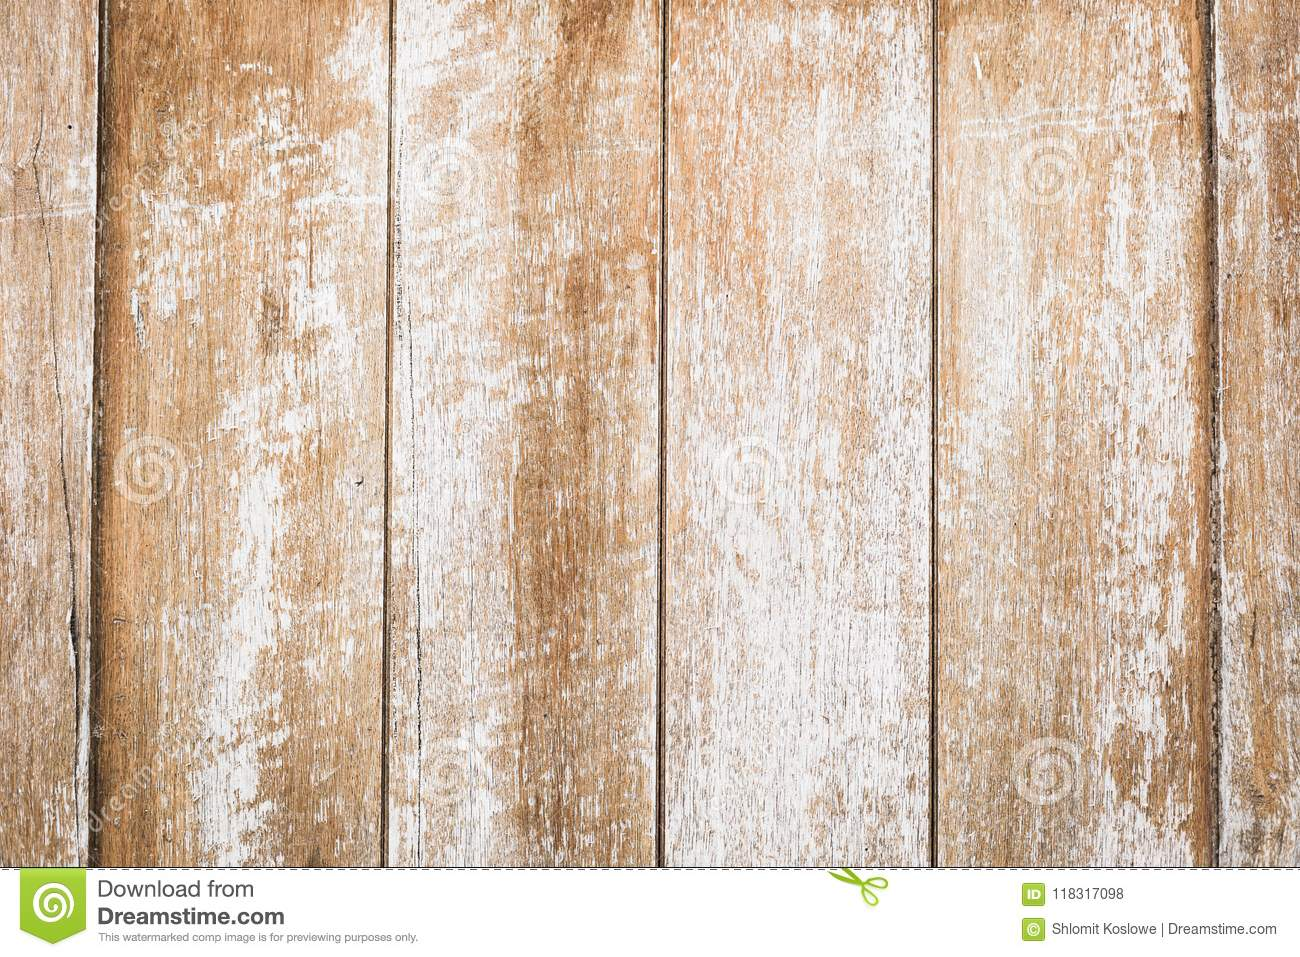 Wood background, old color peeling texture rustic deck